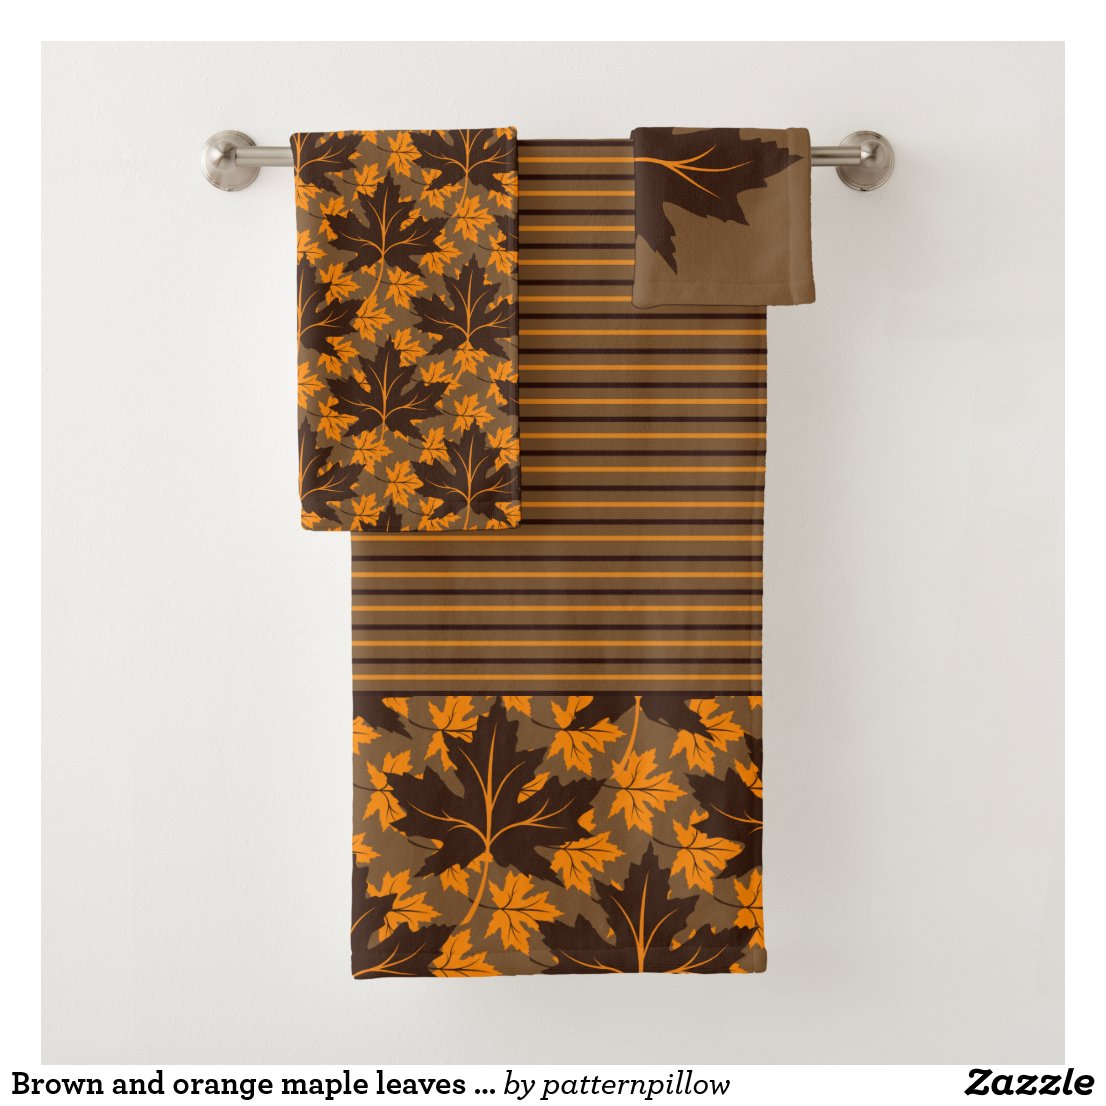 Brown and orange maple leaves fall bathtowel set